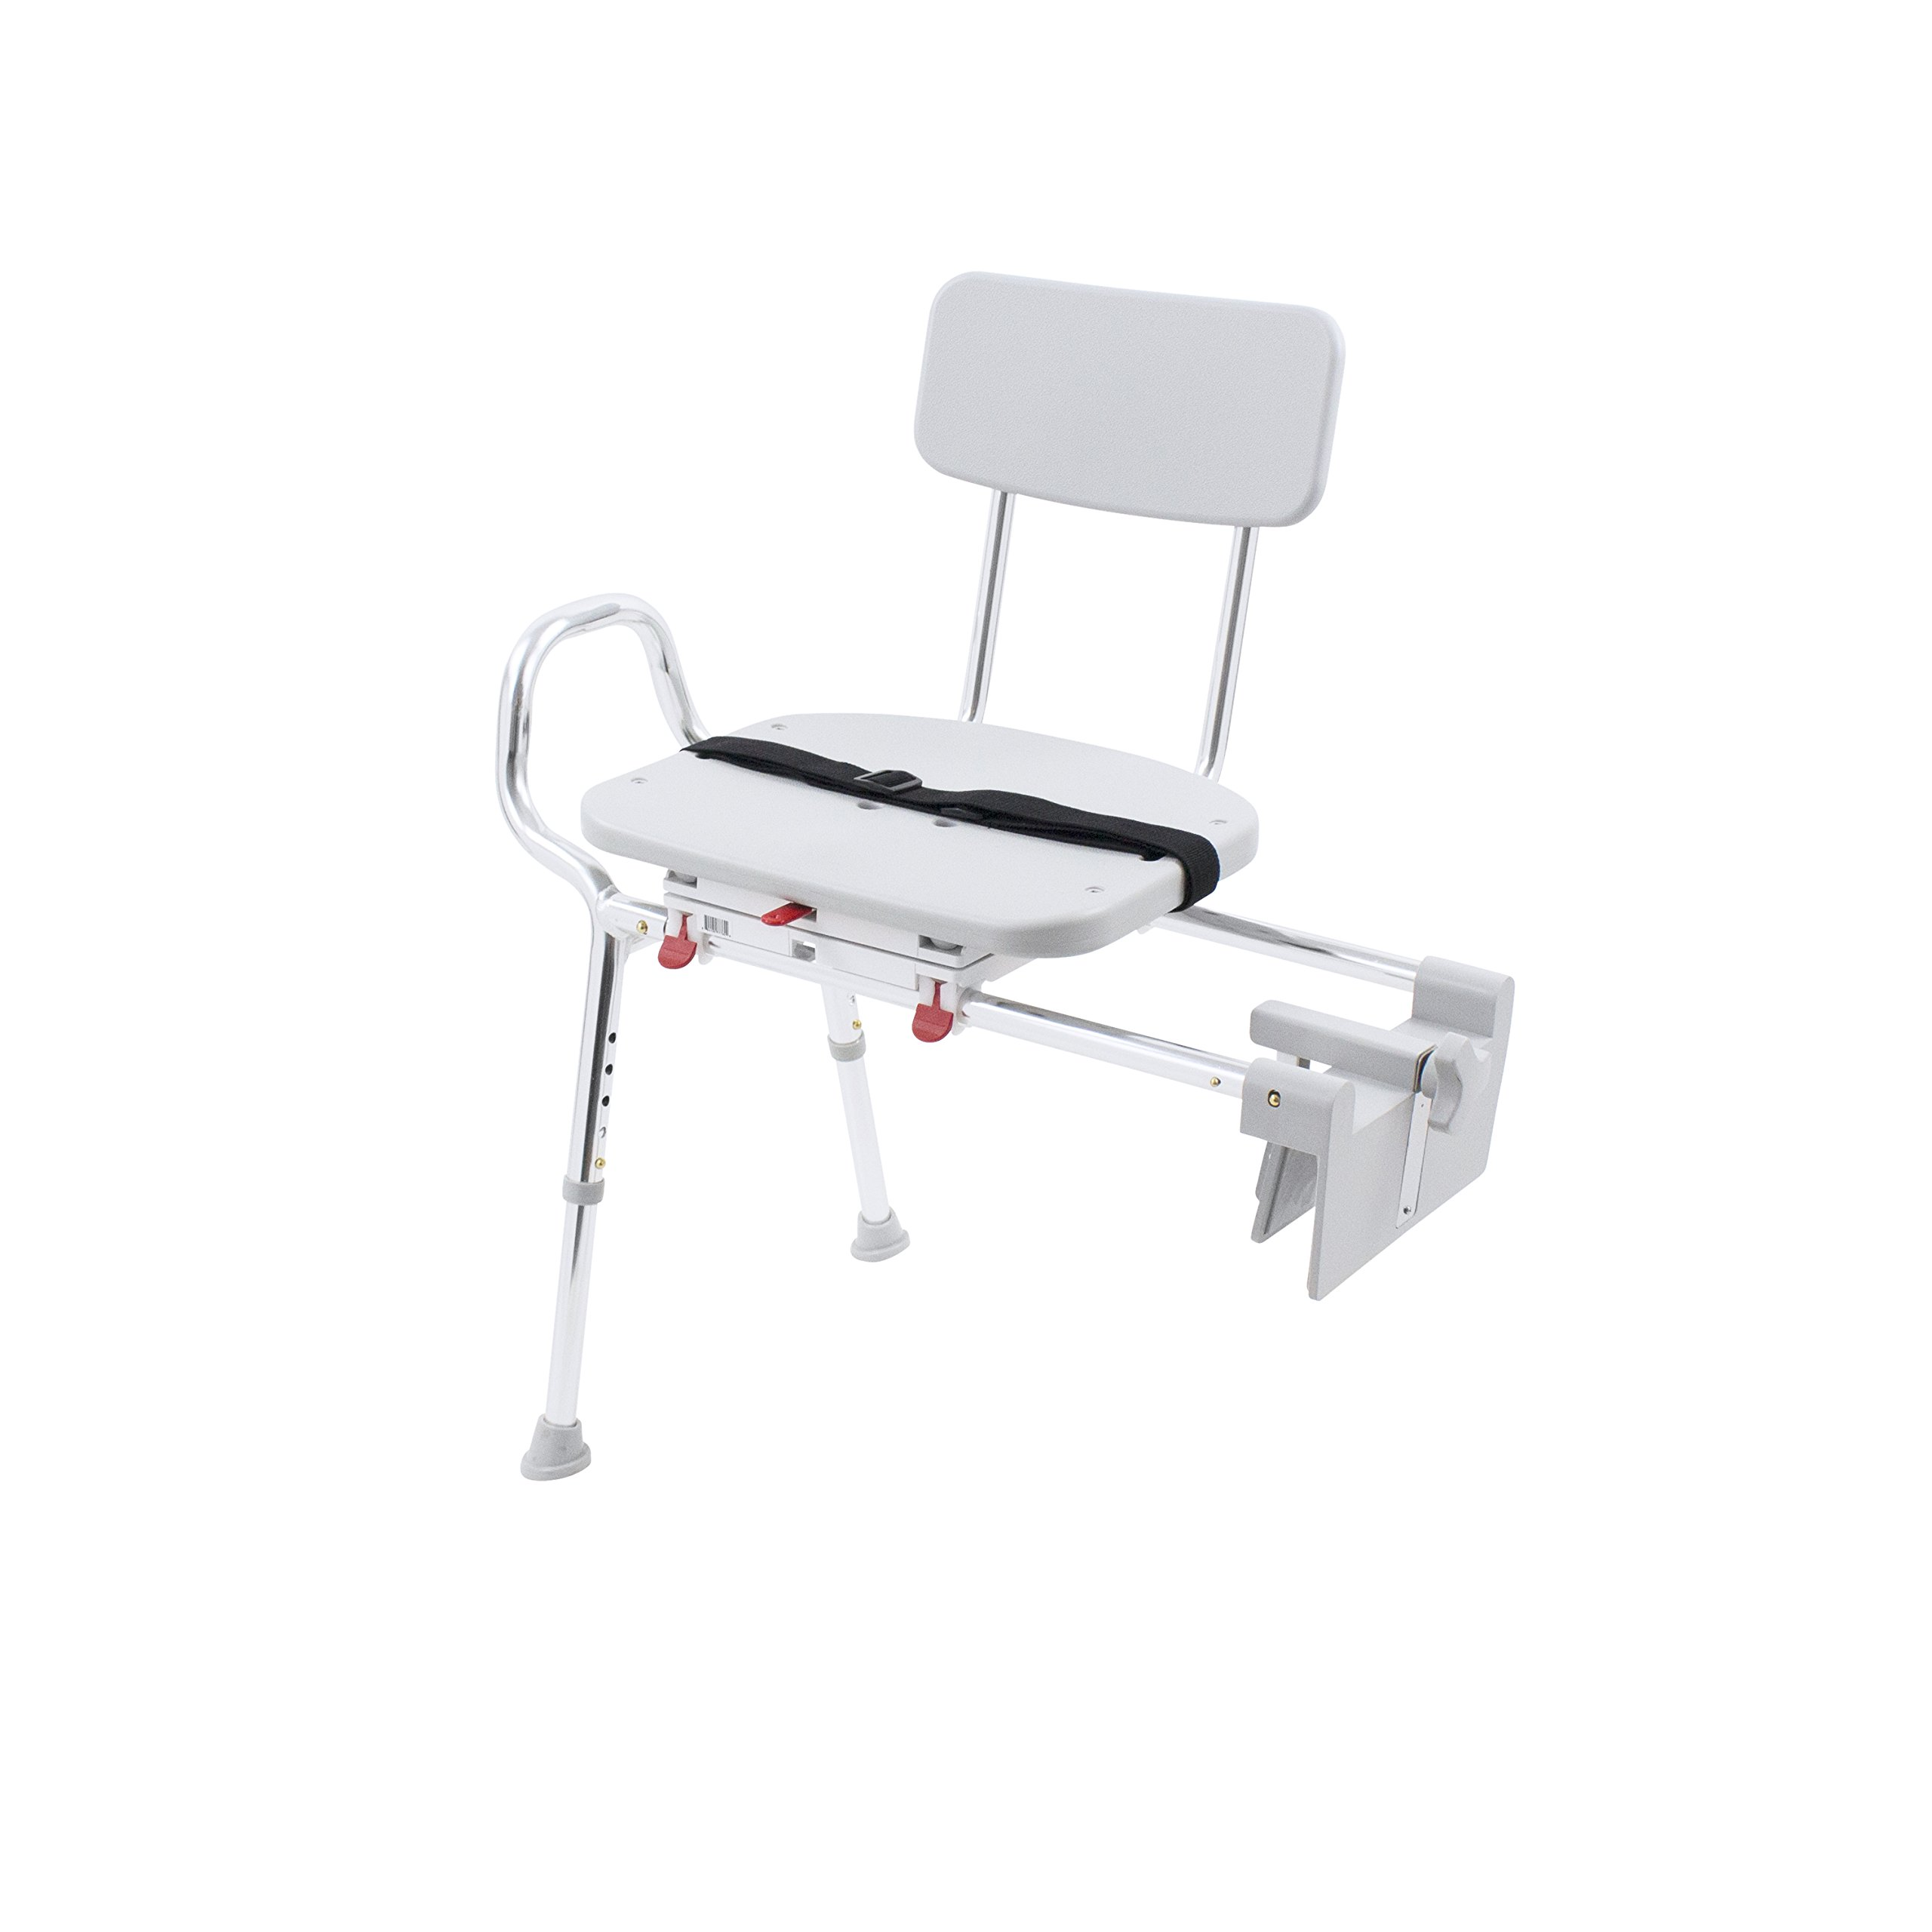 Eagle Health Supplies Tub-Mount Swivel Sliding Shower Transfer Bench, No Tool Assembly by Eagle Health Supplies (Image #5)